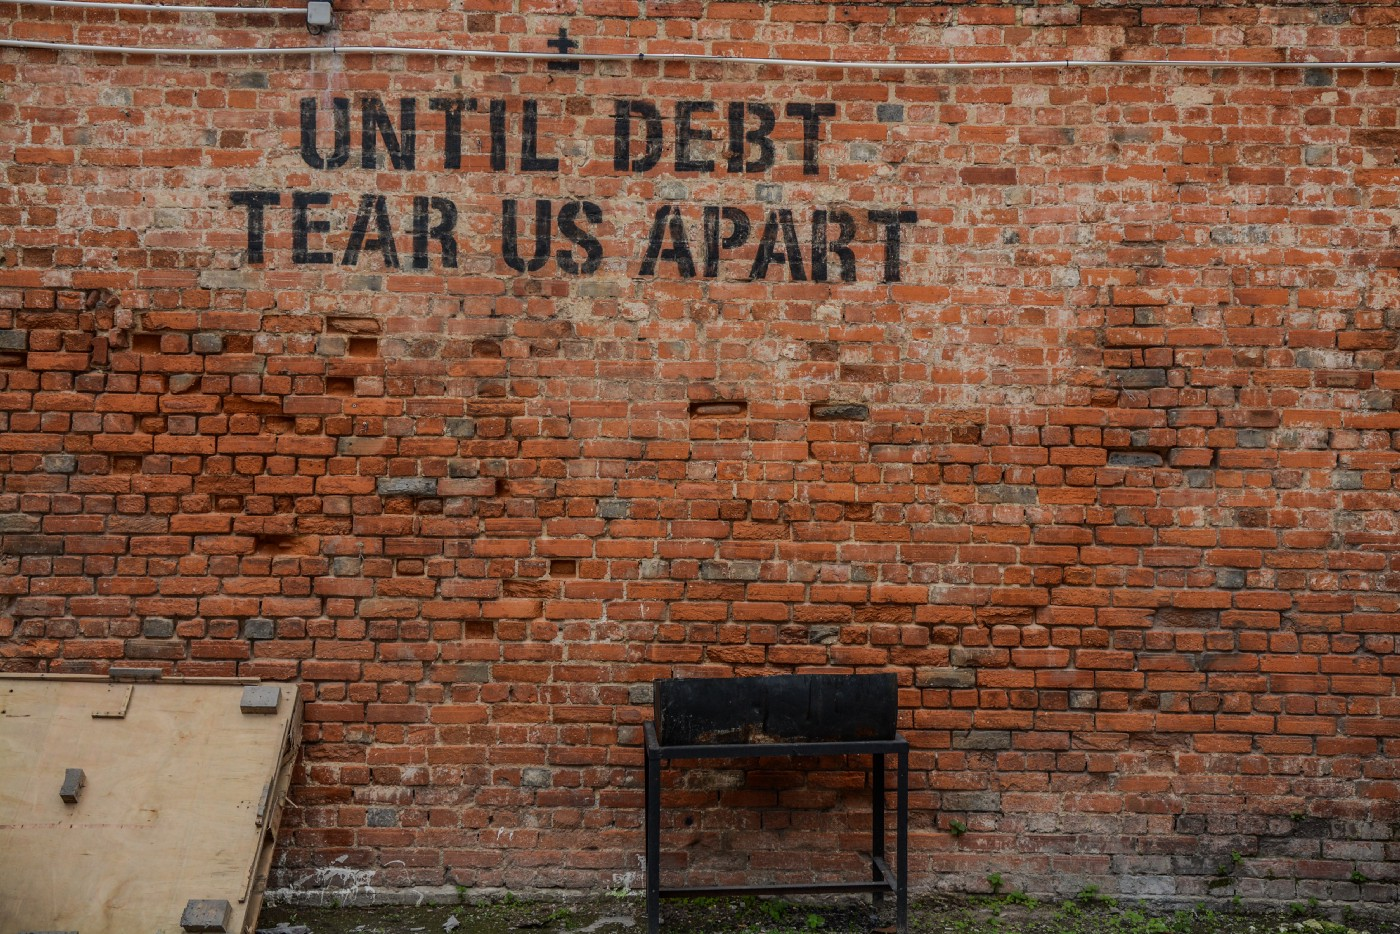 """Picture of a orange-red brick wall with a sign that reads """"Until debt tear us apart""""."""